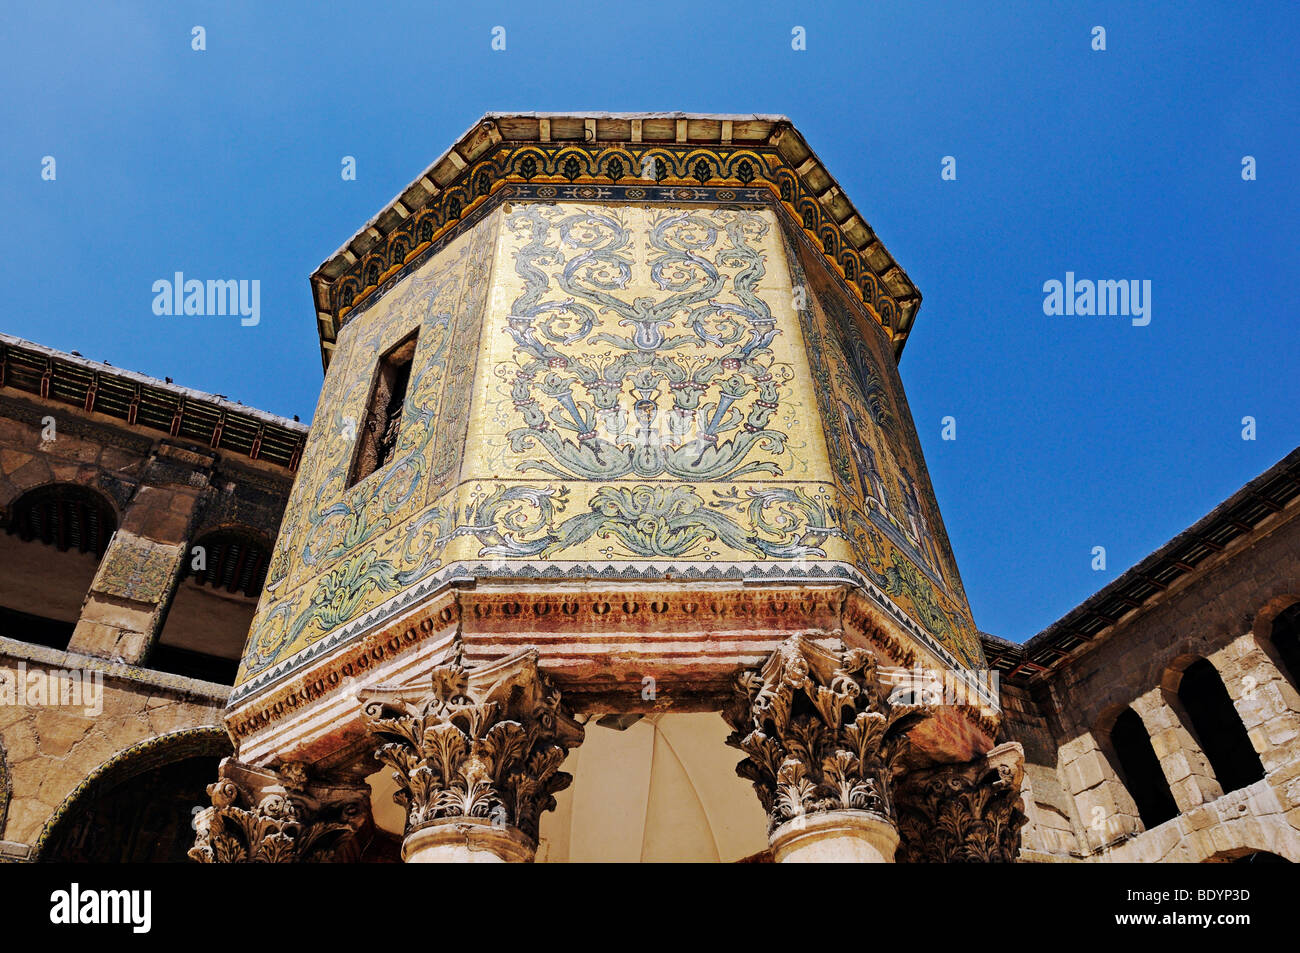 Treasure house of the Ottomans in the courtyard of the Umayyad-Mosque in Damascus, Syria, Middle East, Asia Stock Photo